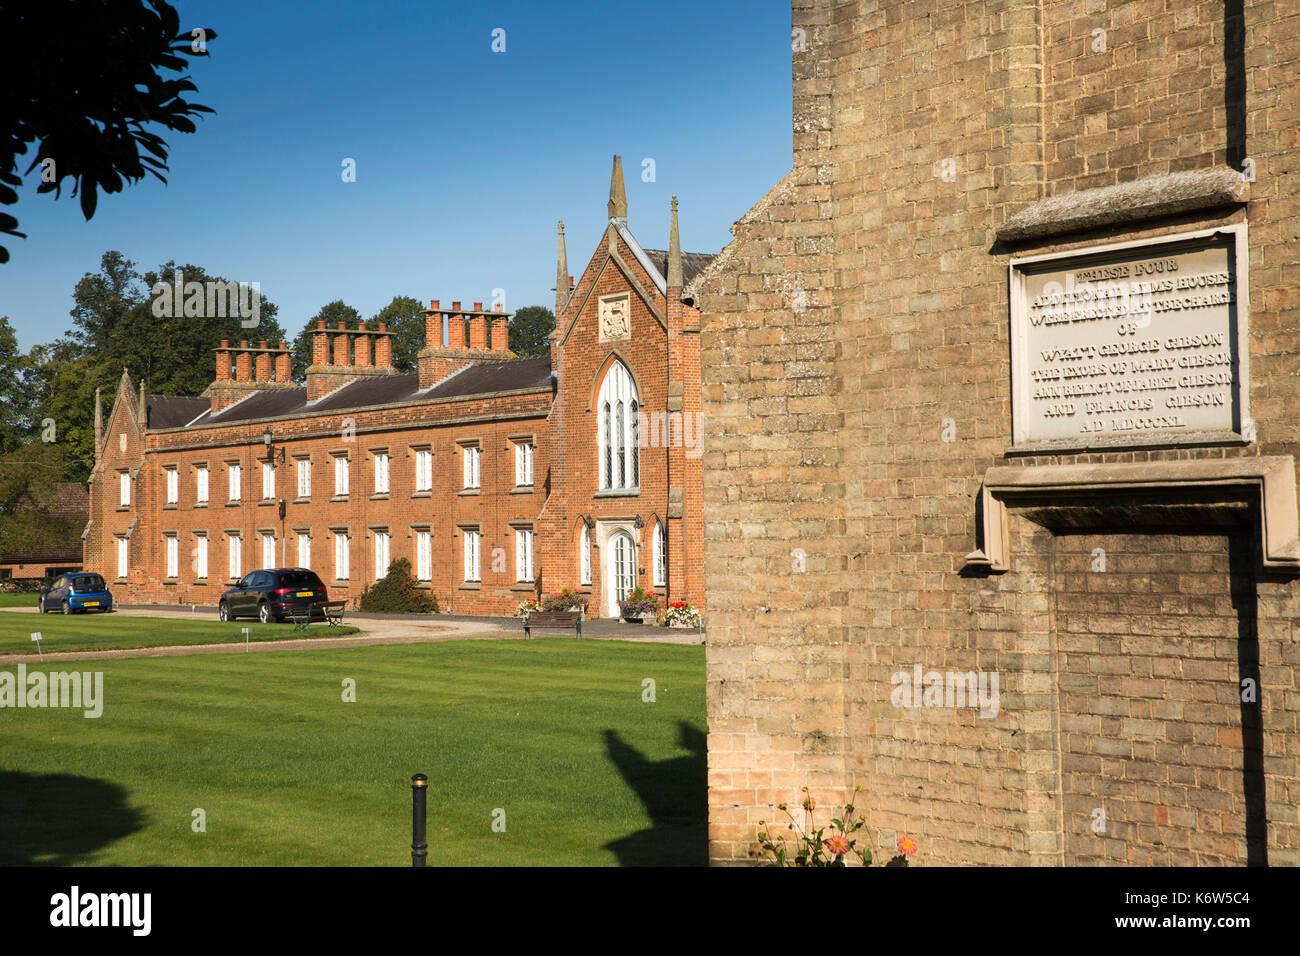 UK, England, Essex, Saffron Walden, Abbey Lane, King Edward VI Almshouses, Victorian rebuilding on site of original 1400s charitable housing - Stock Image